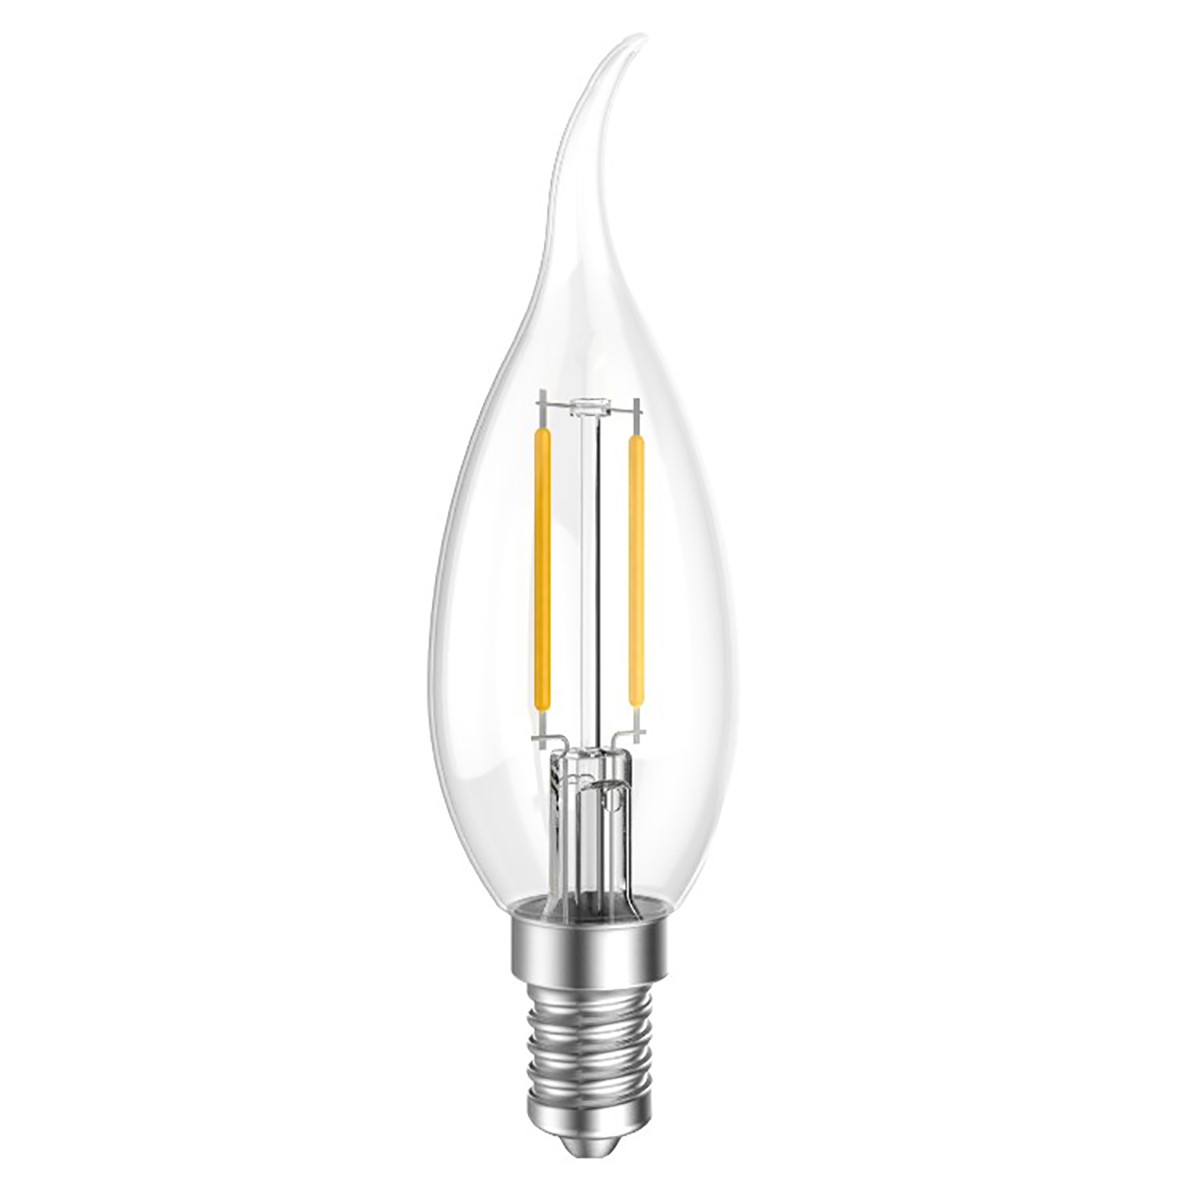 2W Filament LED Candle Light Bulb Light C35 Flame Tip Chandelier Bulb with E14 Base 20W Equivalent Halogen Replacement